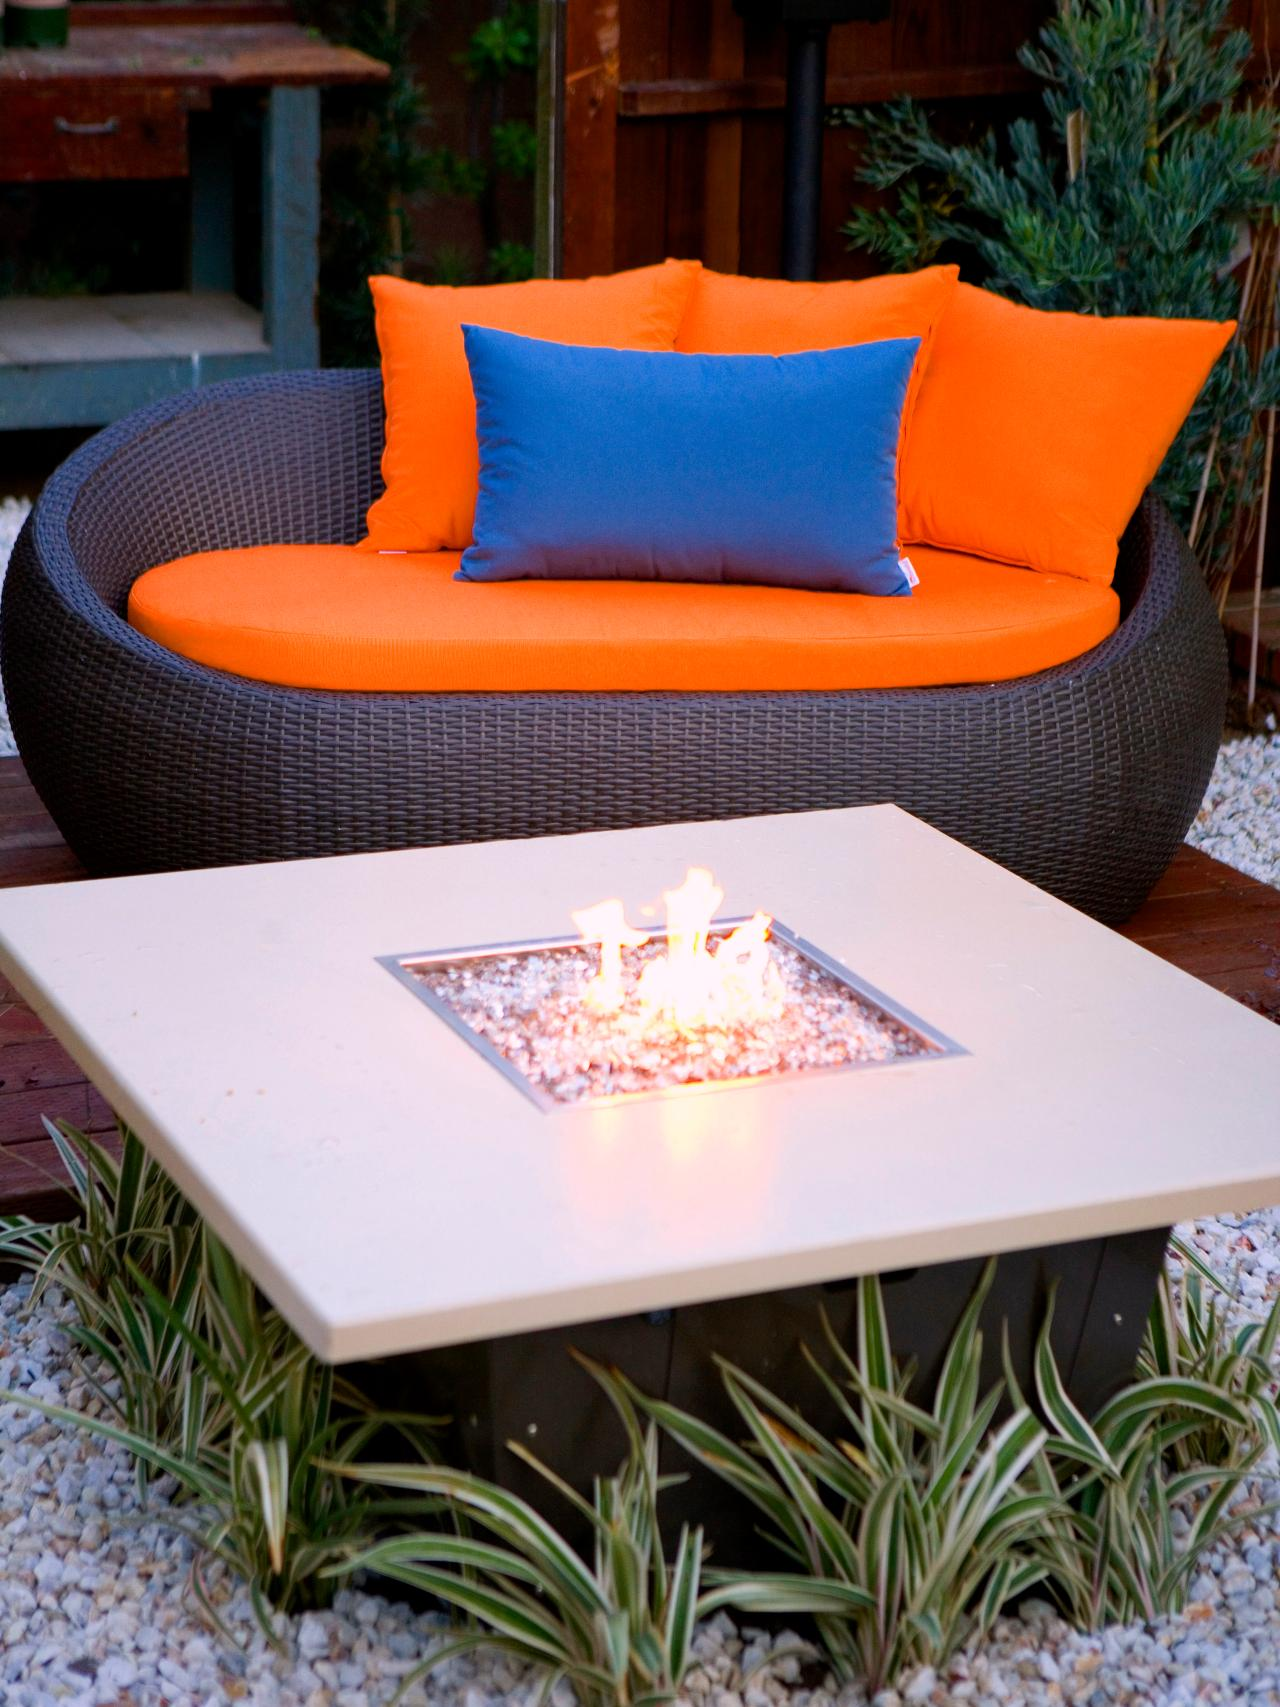 Fire Pit Designs Glamorous 66 Fire Pit And Outdoor Fireplace Ideas  Diy Network Blog Made  . Inspiration